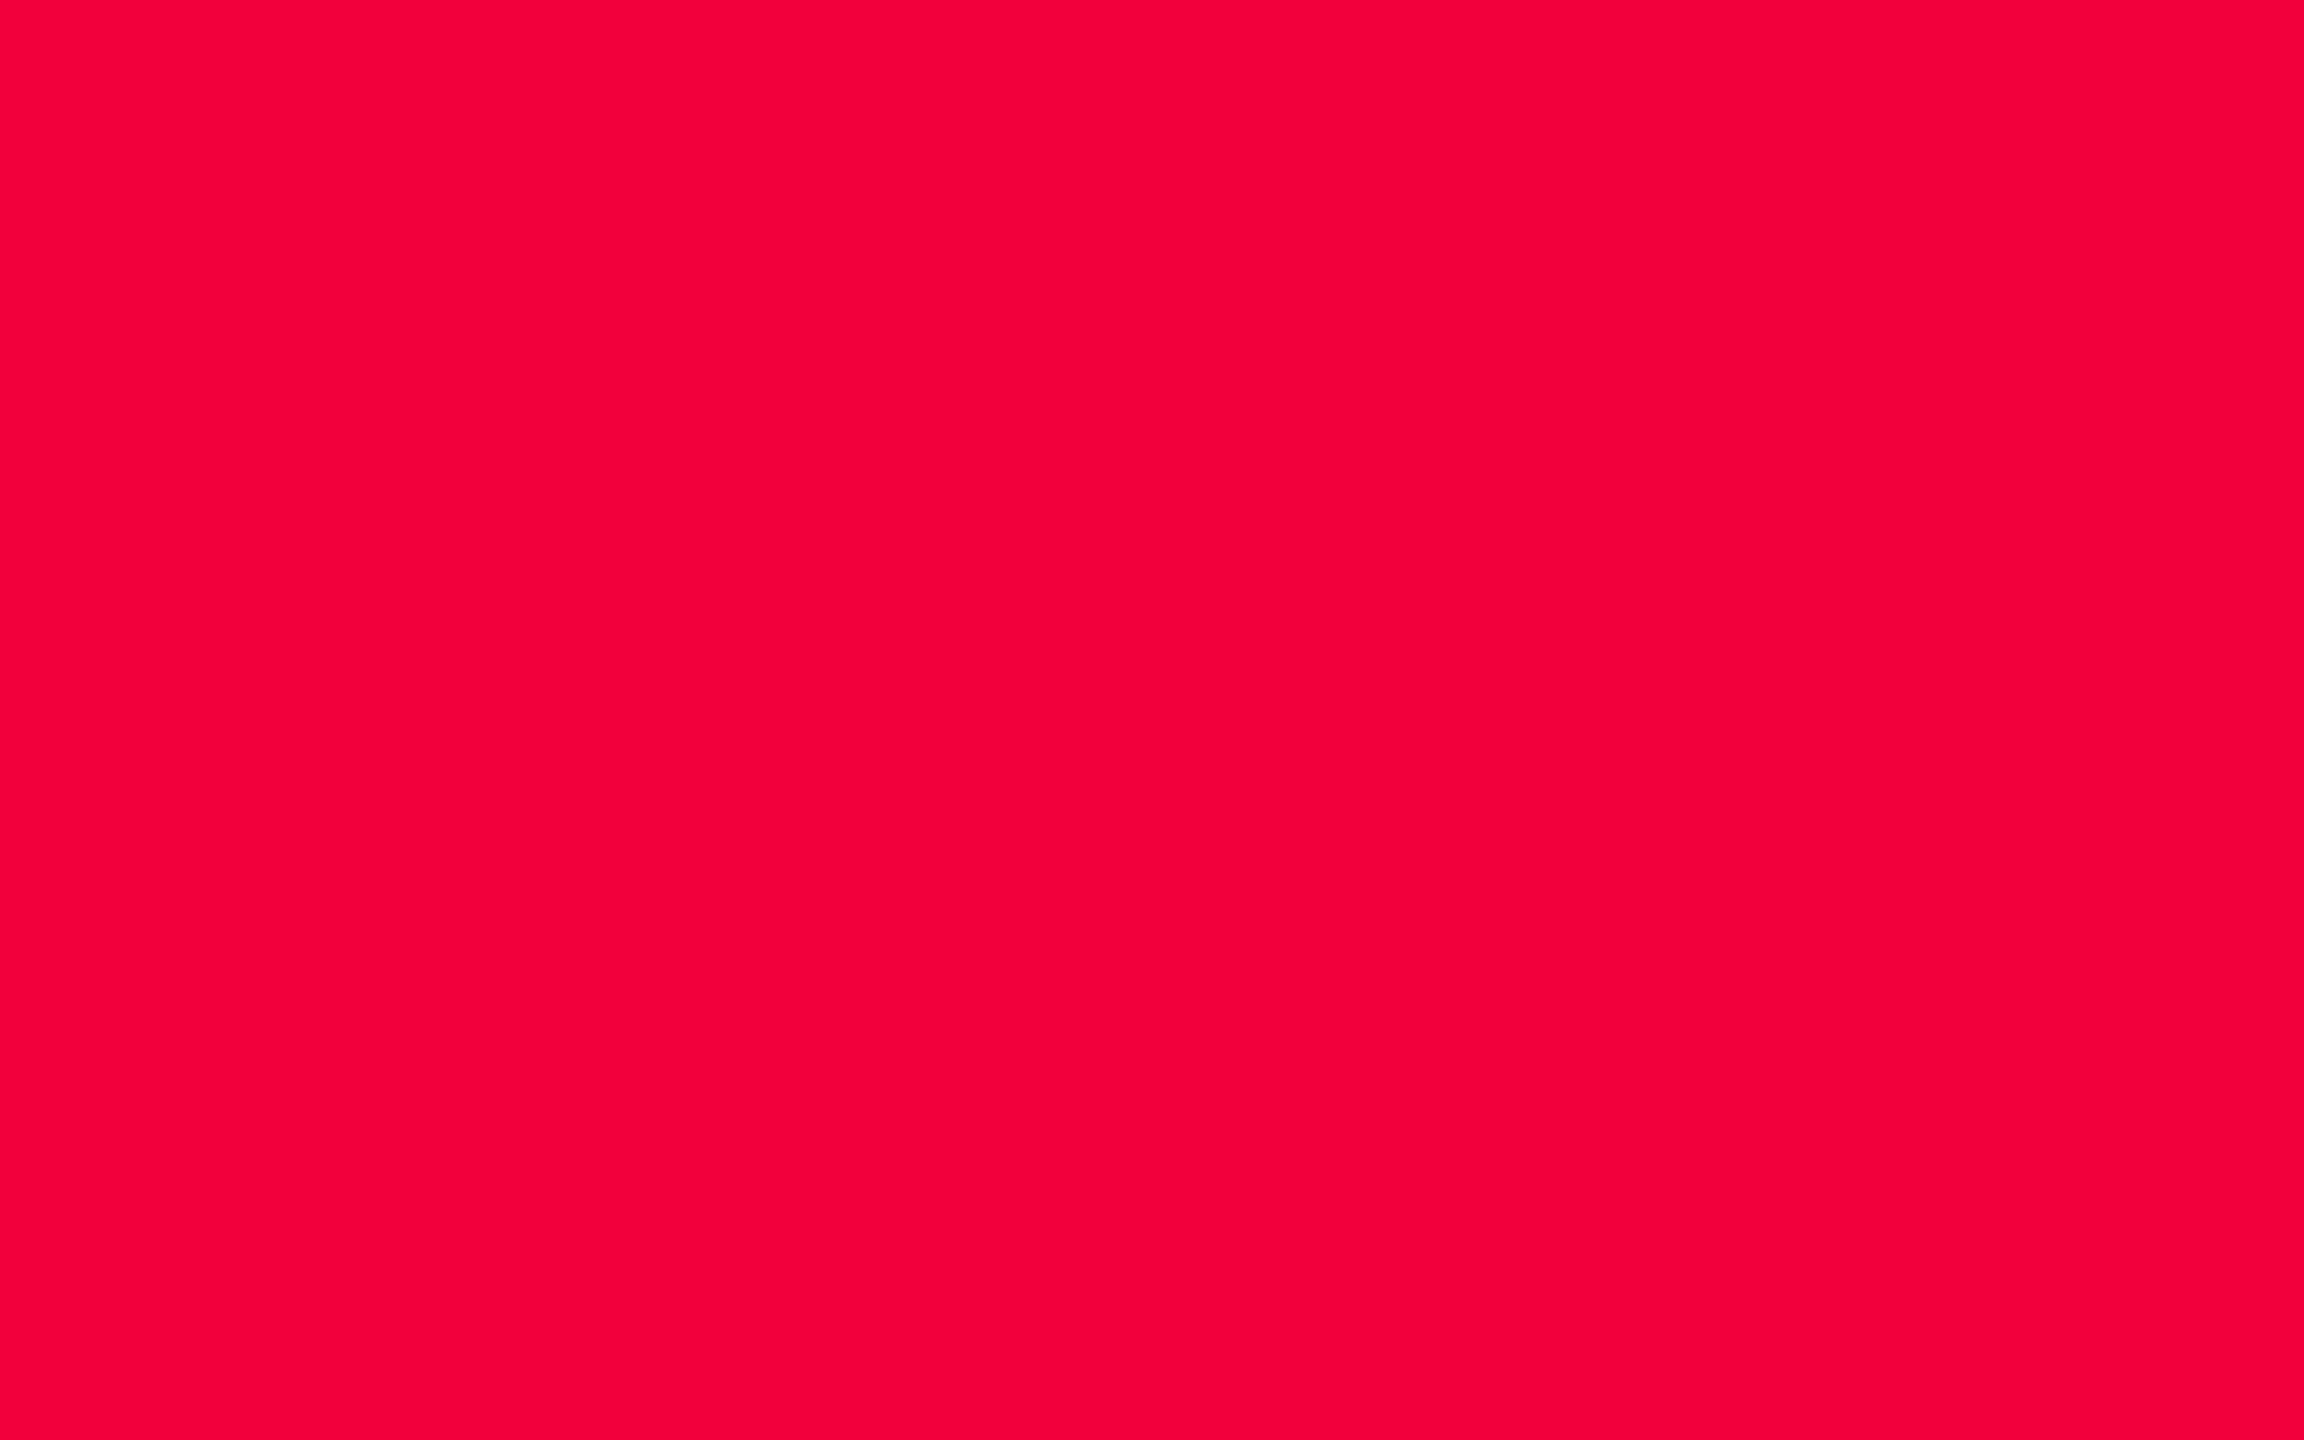 2304x1440 Red Munsell Solid Color Background